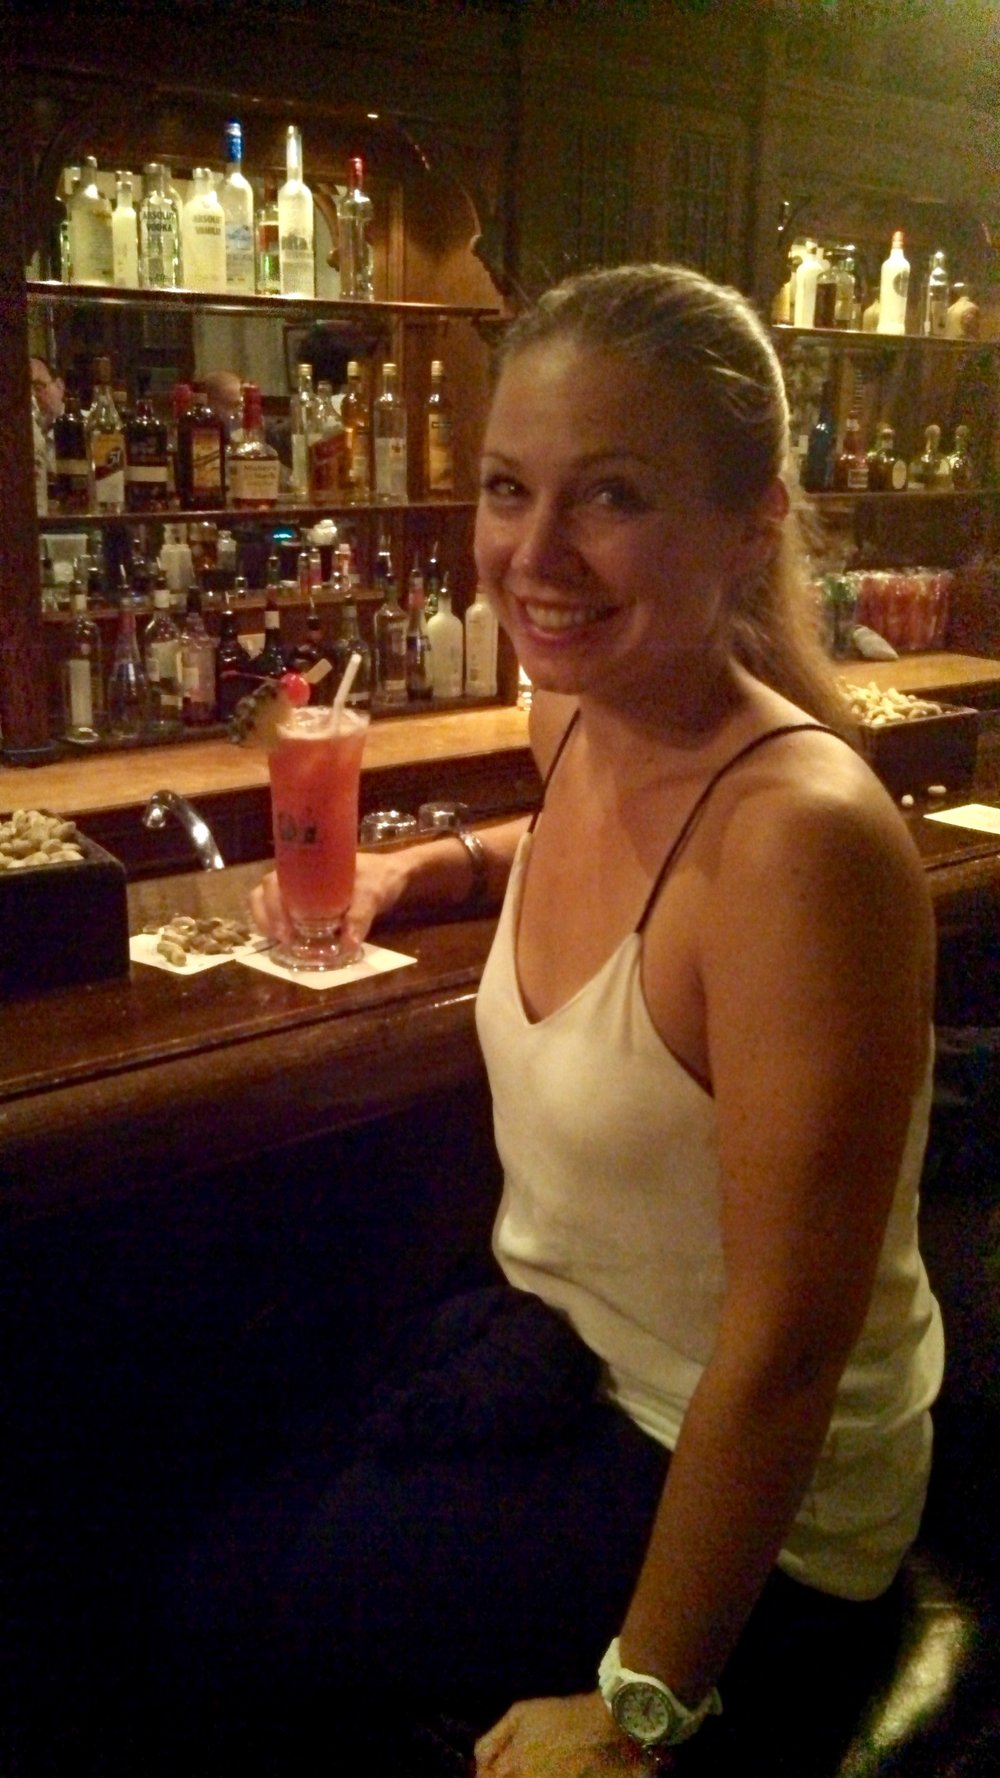 Enjoying an original Singapore Sling cocktail at the Raffles Hotel in Singapore